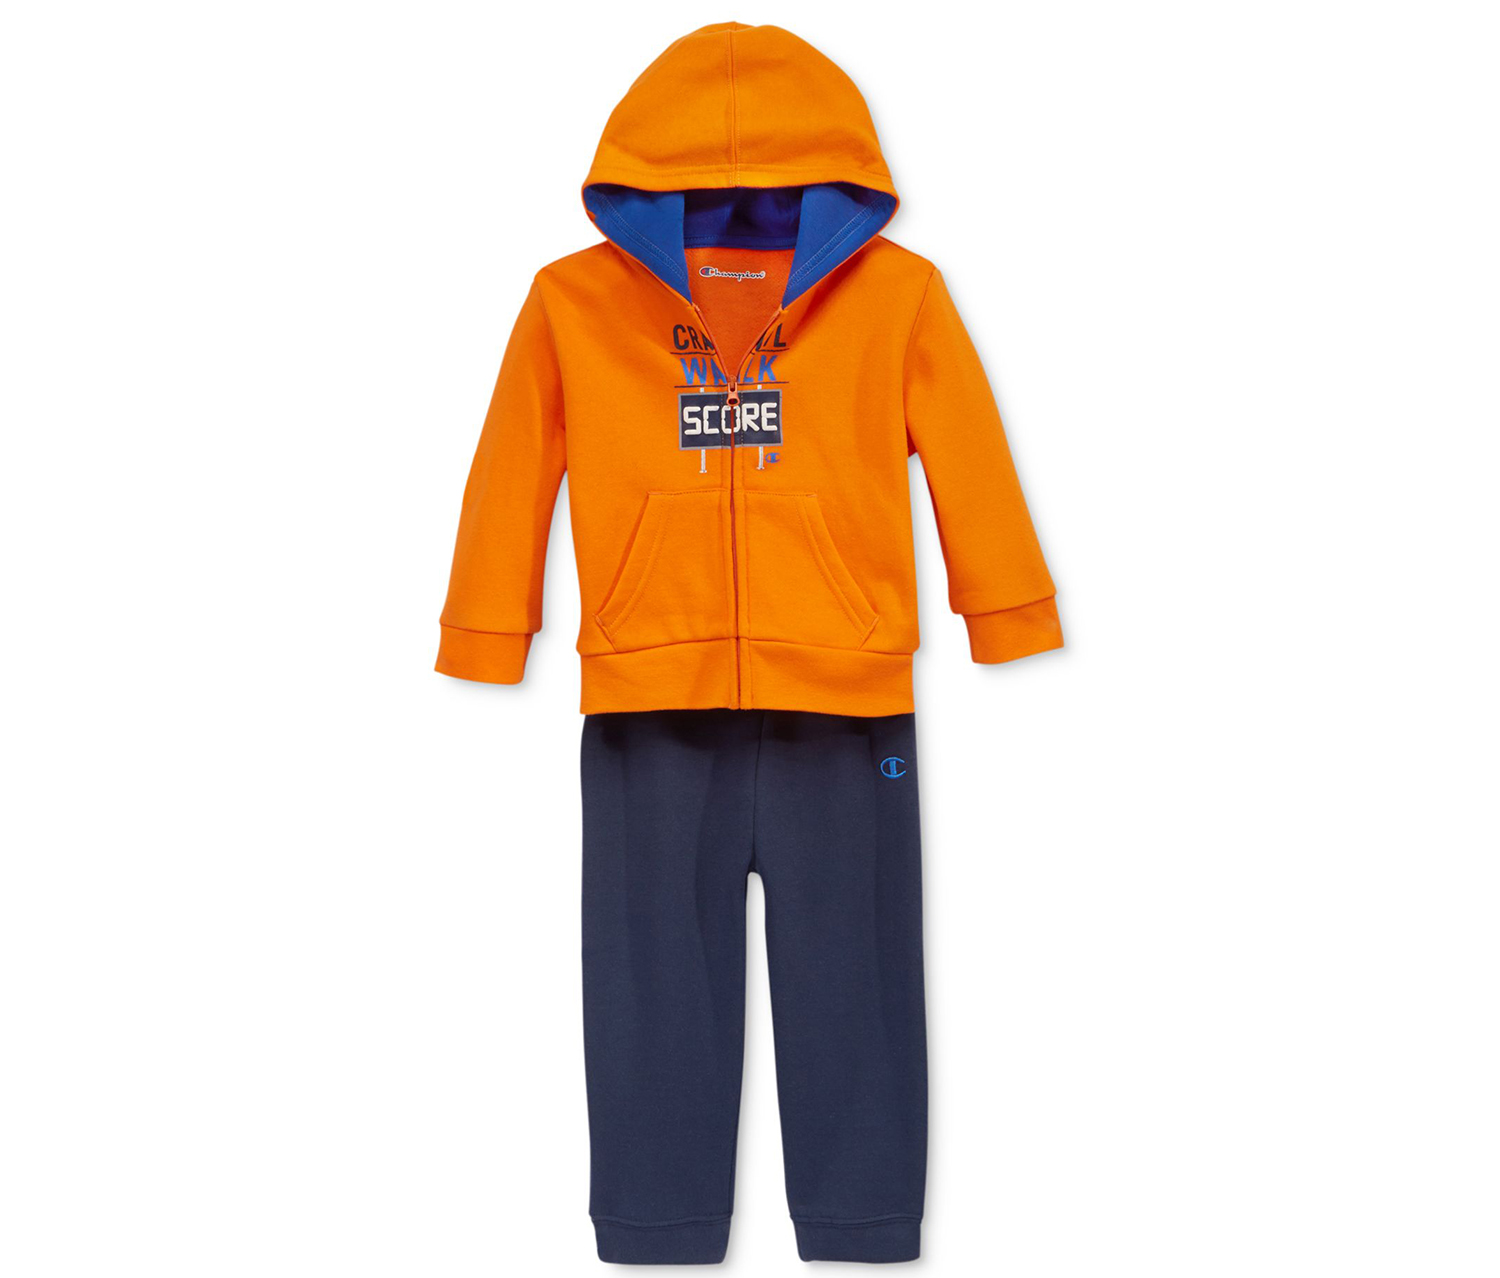 9fa8fa3cad5b ... Babies Set Champion Boys  2-Pc. Zip-Up Hoodie   Pants Set